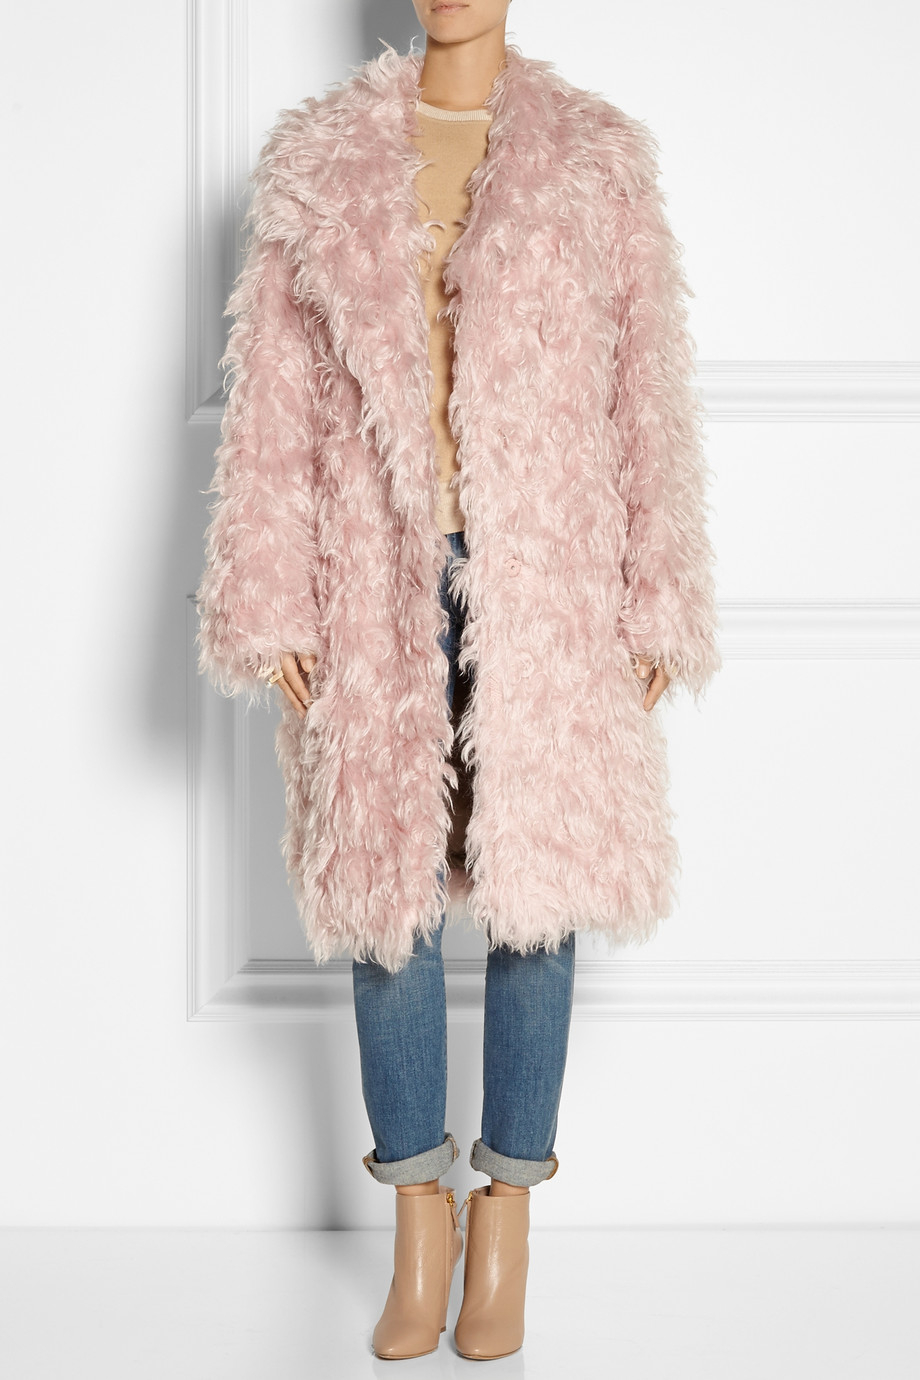 N°21 Casire Oversized Mohair-Blend Faux Shearling Coat in Pink | Lyst